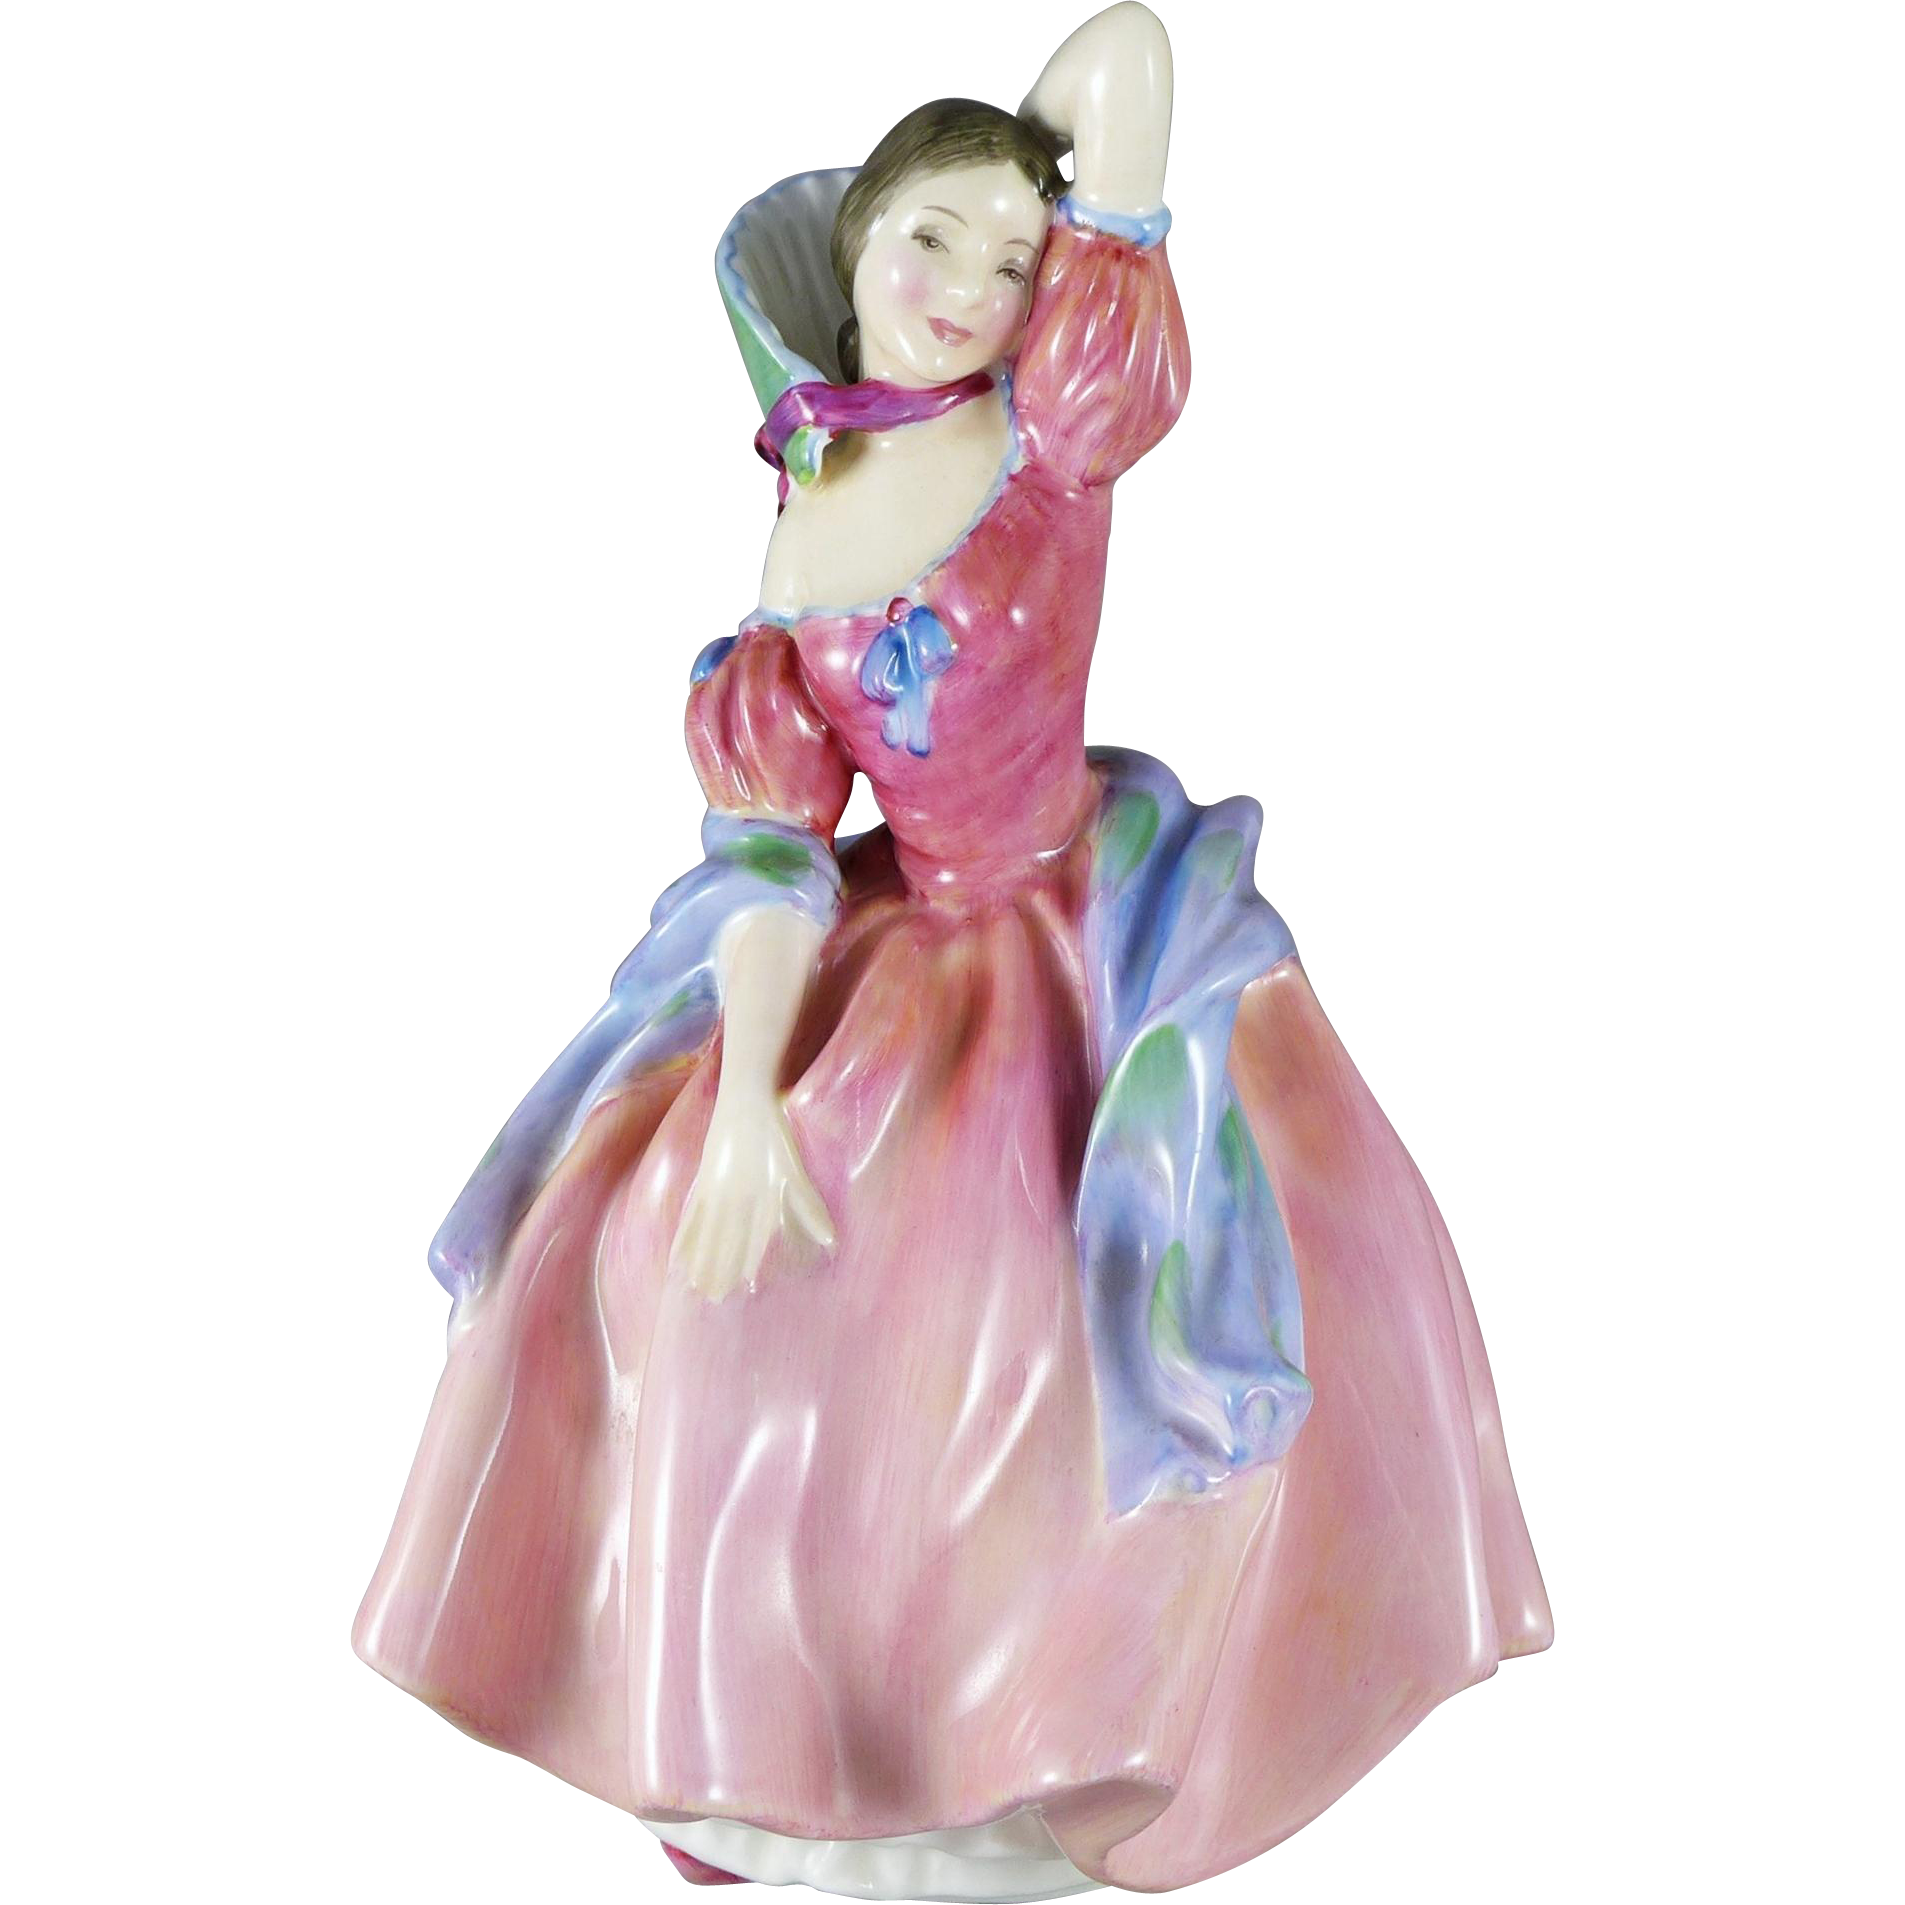 Vintage Royal Doulton May Time Figurine HN2113, Lady In Pink